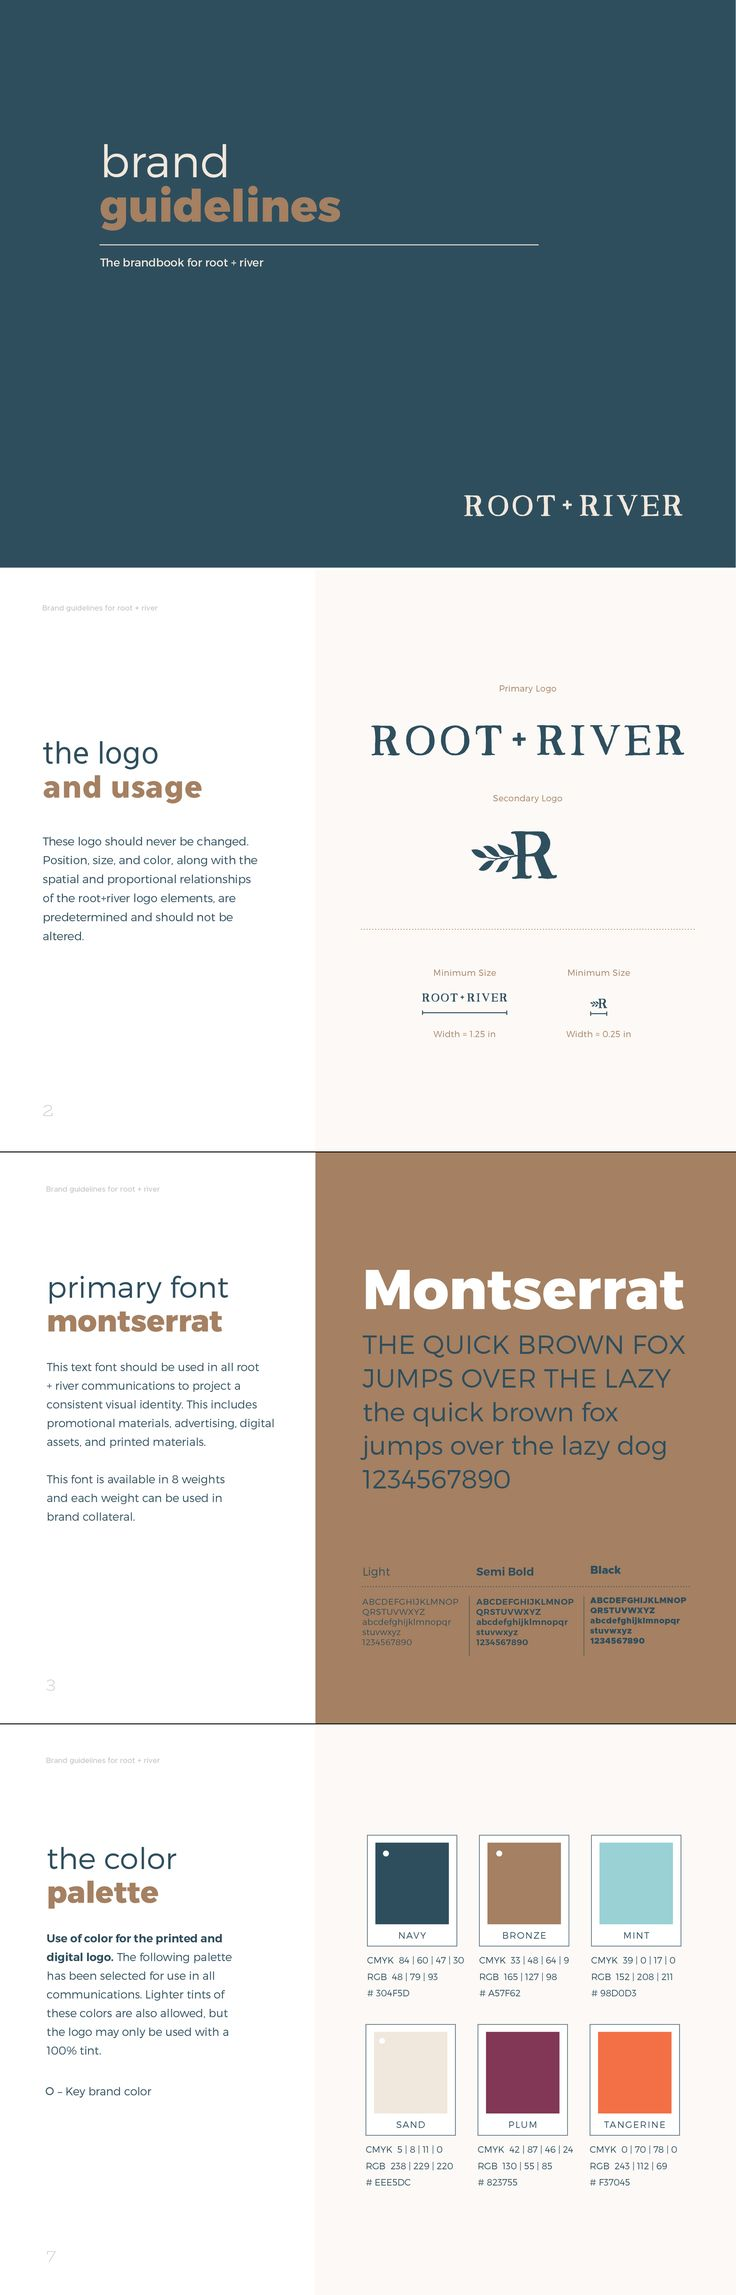 root + river Brand Style Guide example by Pace Creative Design Studio